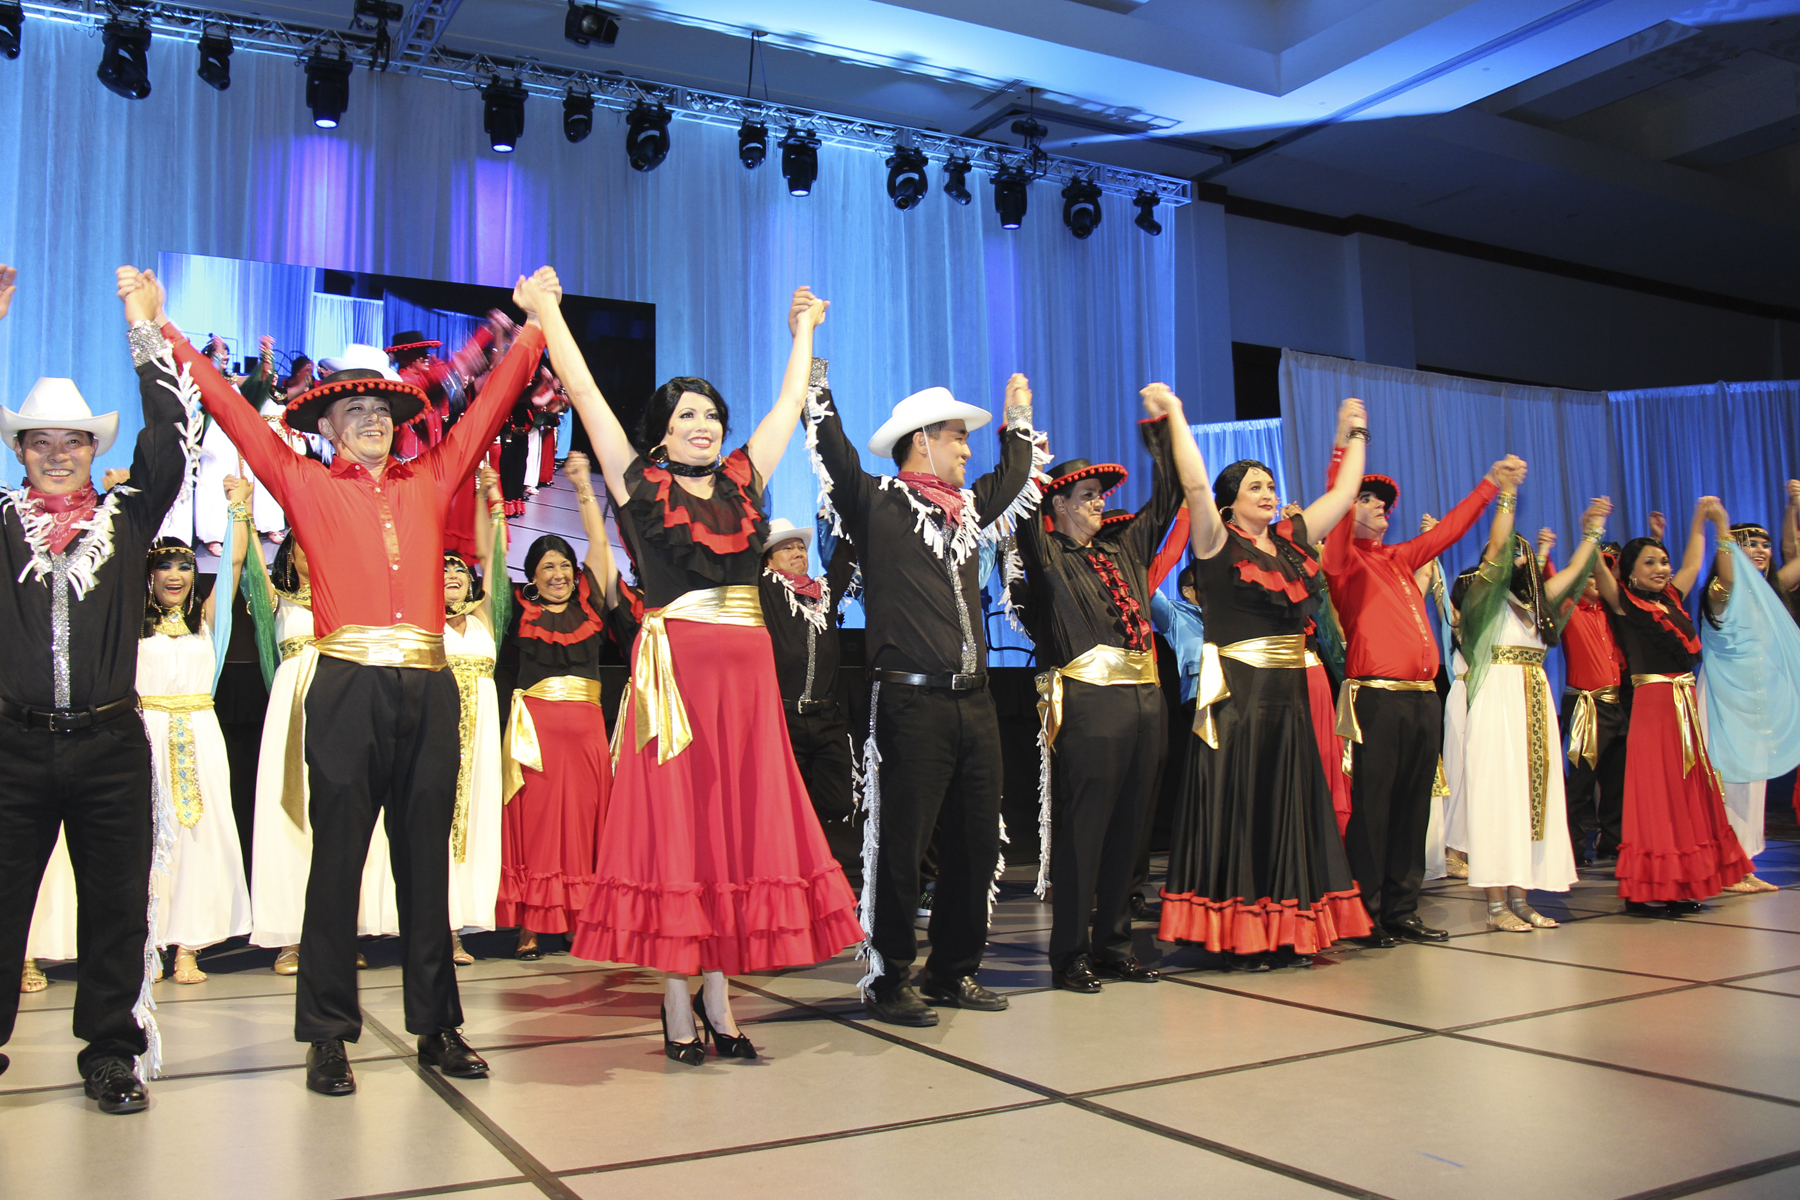 2016 AN EVENING AROUND THE WORLD: The 2016 AN EVENING AROUND THE WORLD Performers take a bow at the end of their performance.